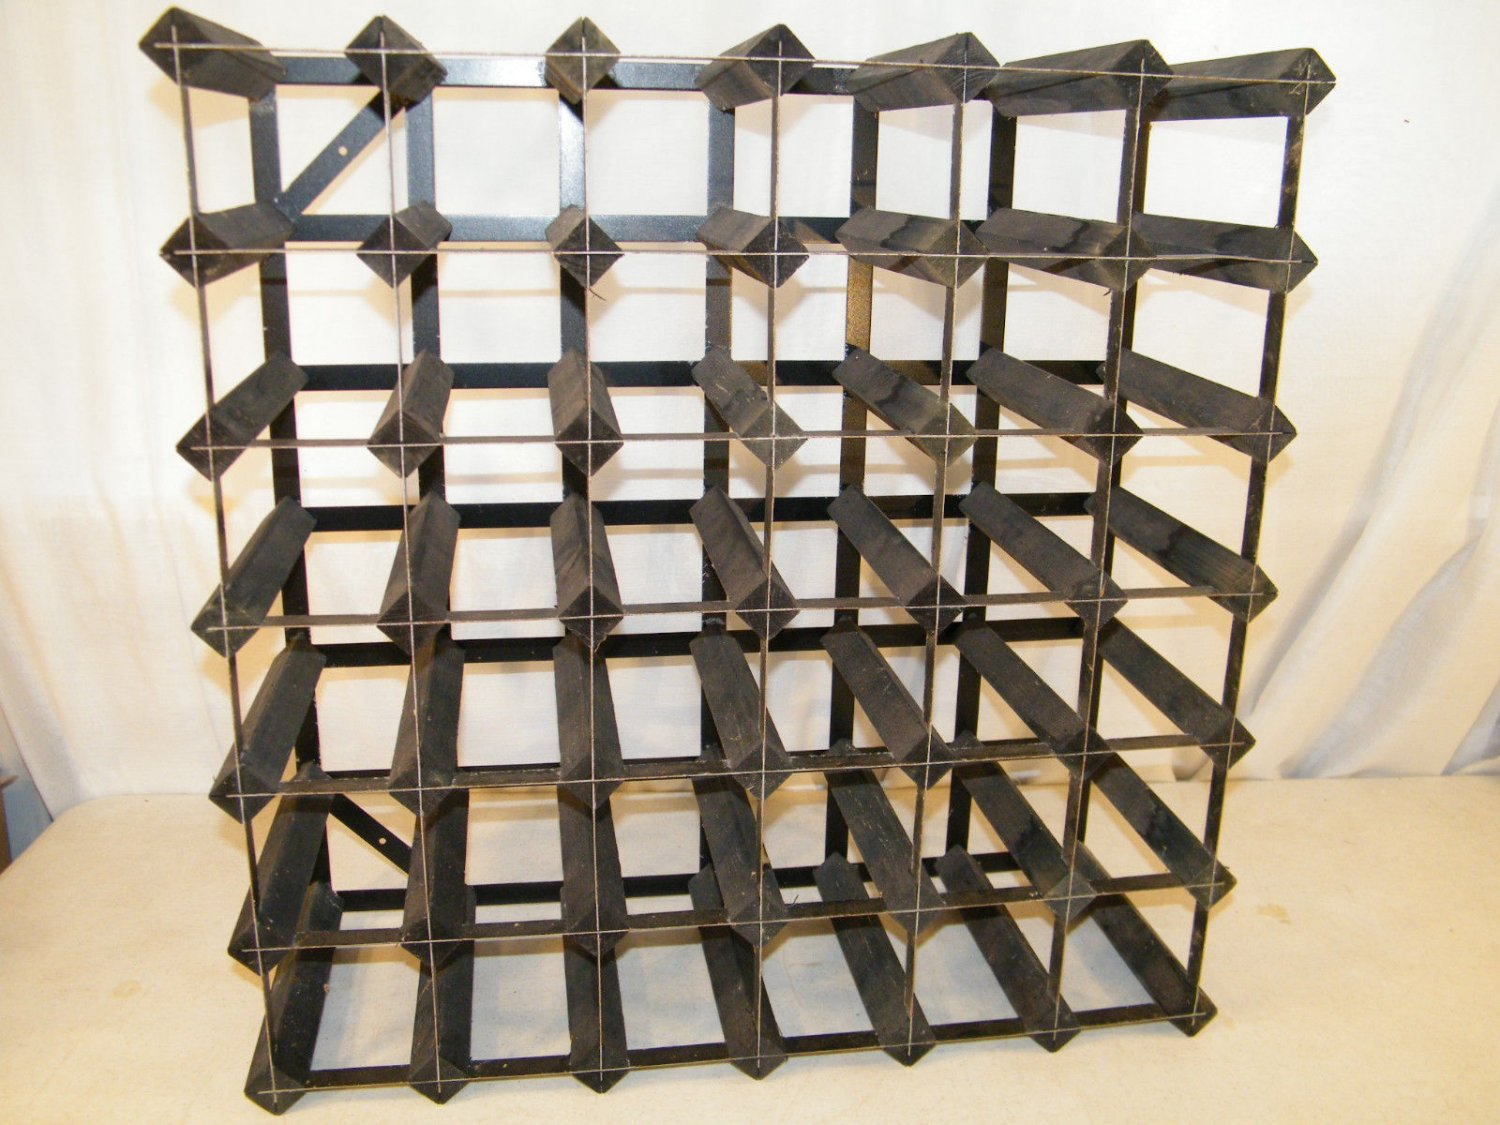 Metal Wine Storage Racks Vintage 36 Bottle Hand Made Wooden Black Metal Wine Storage Rack Kitchen